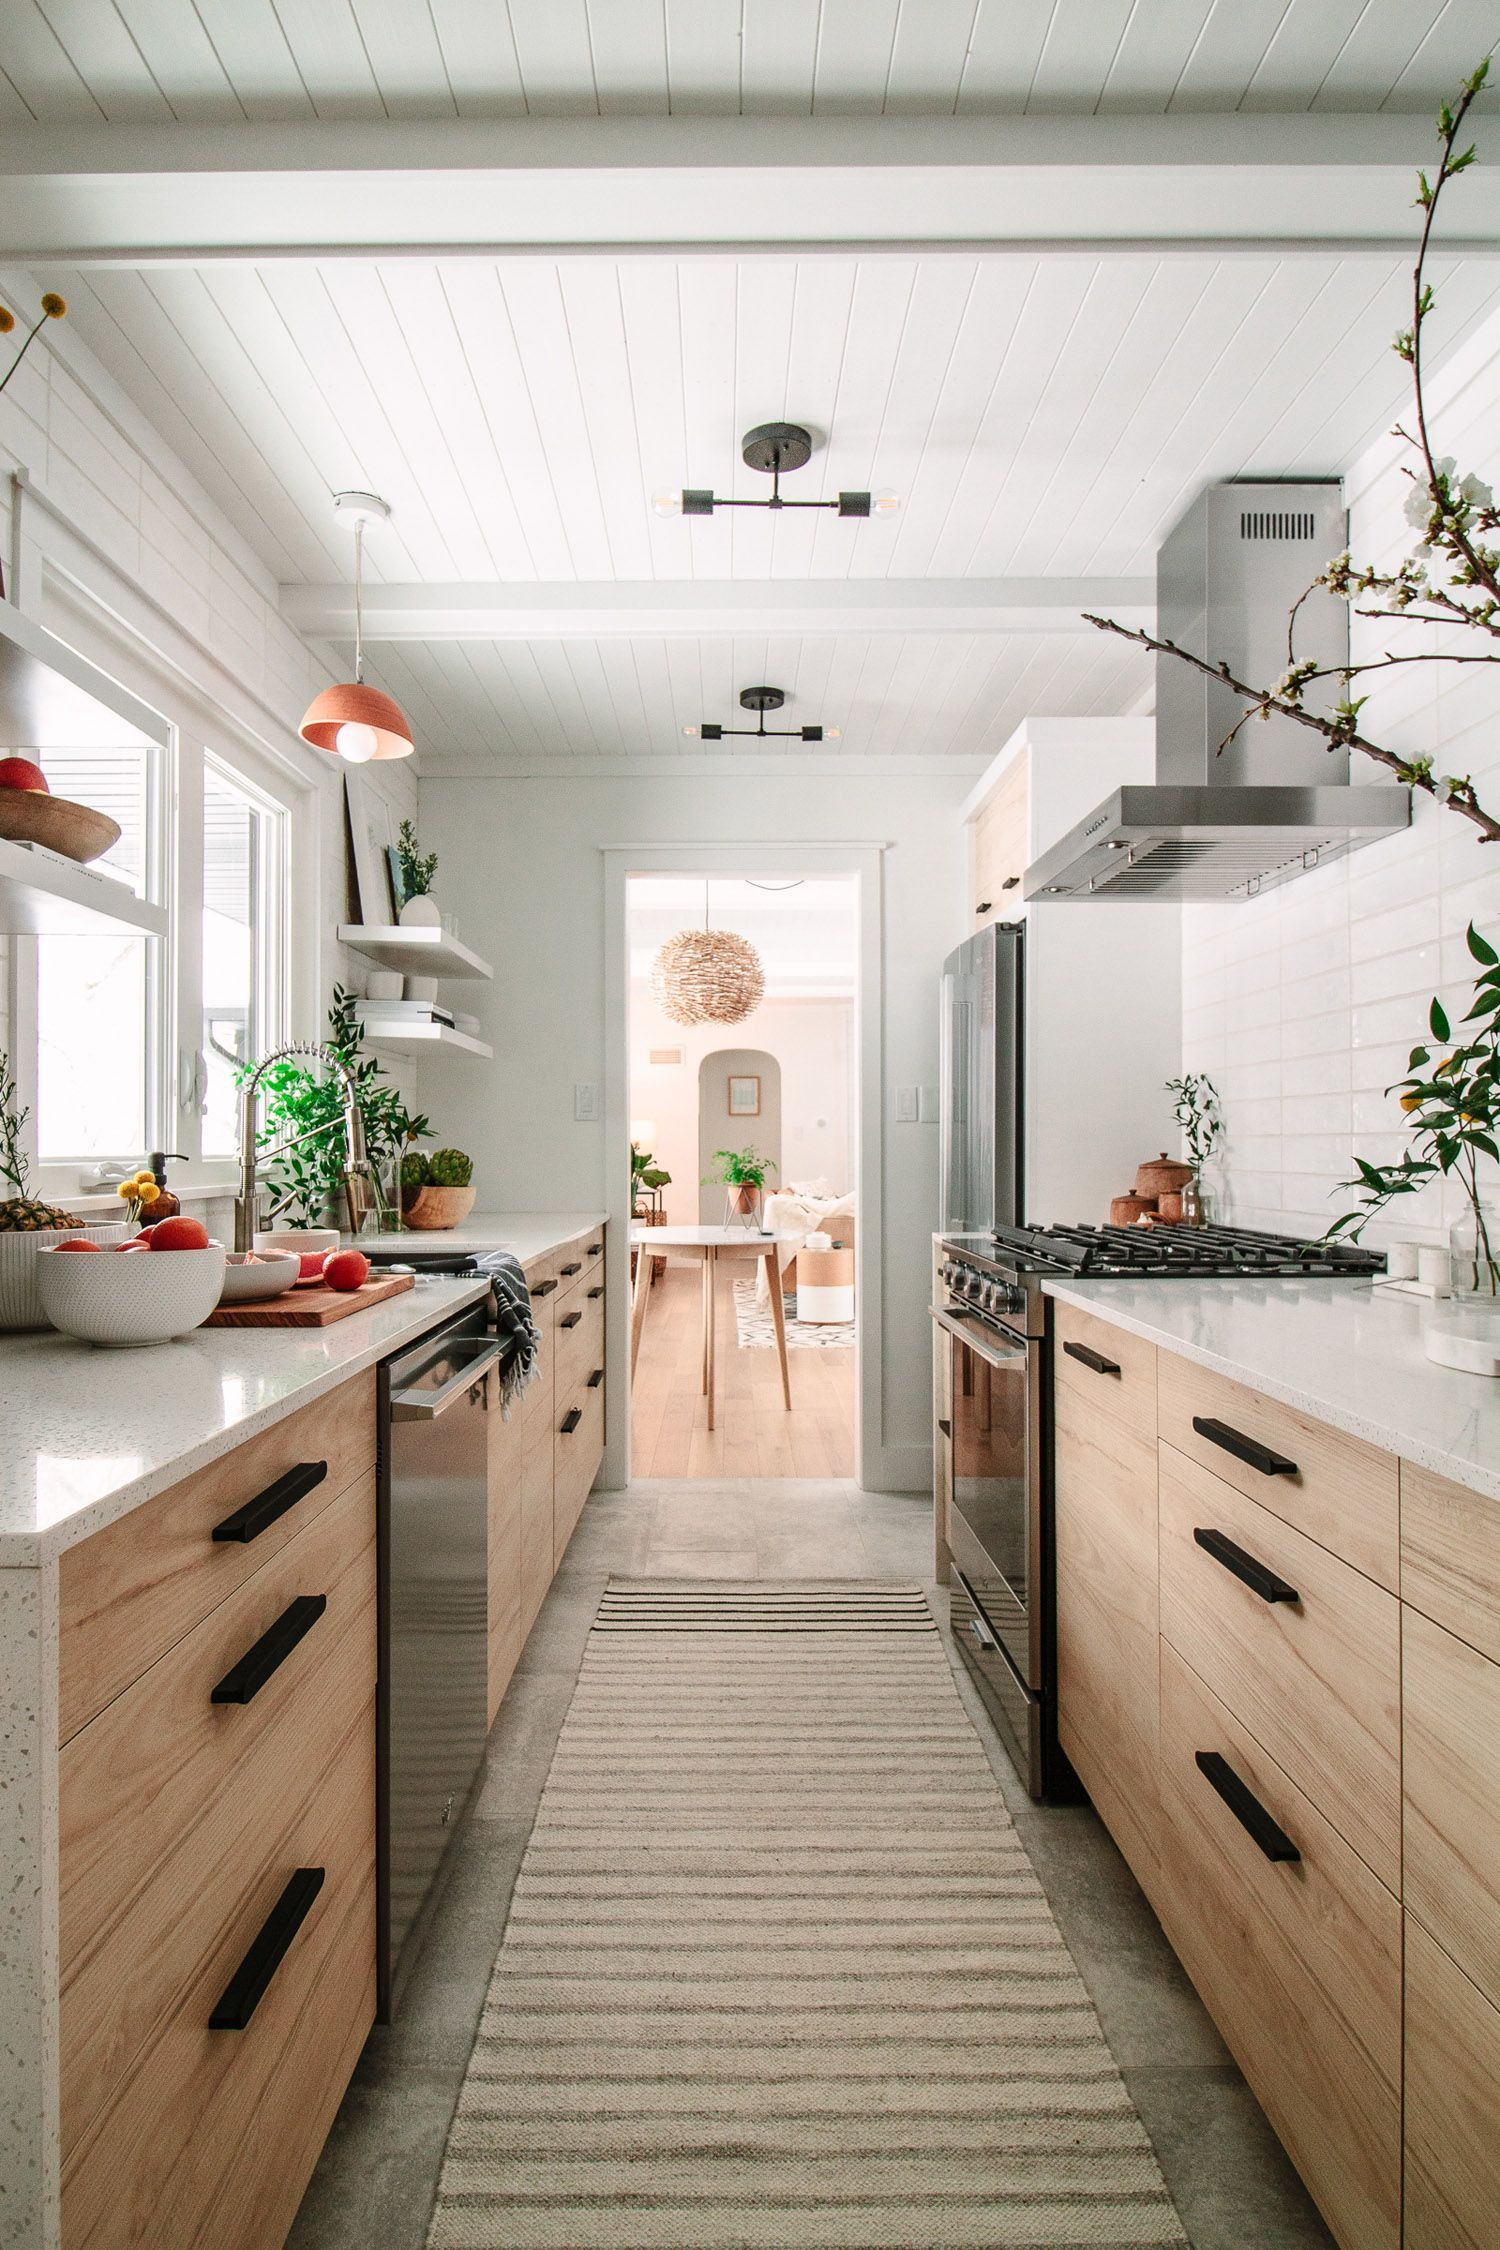 galley kitchen design ideas that live large in 2020 galley kitchen design kitchen design on kitchen remodel galley style id=19492